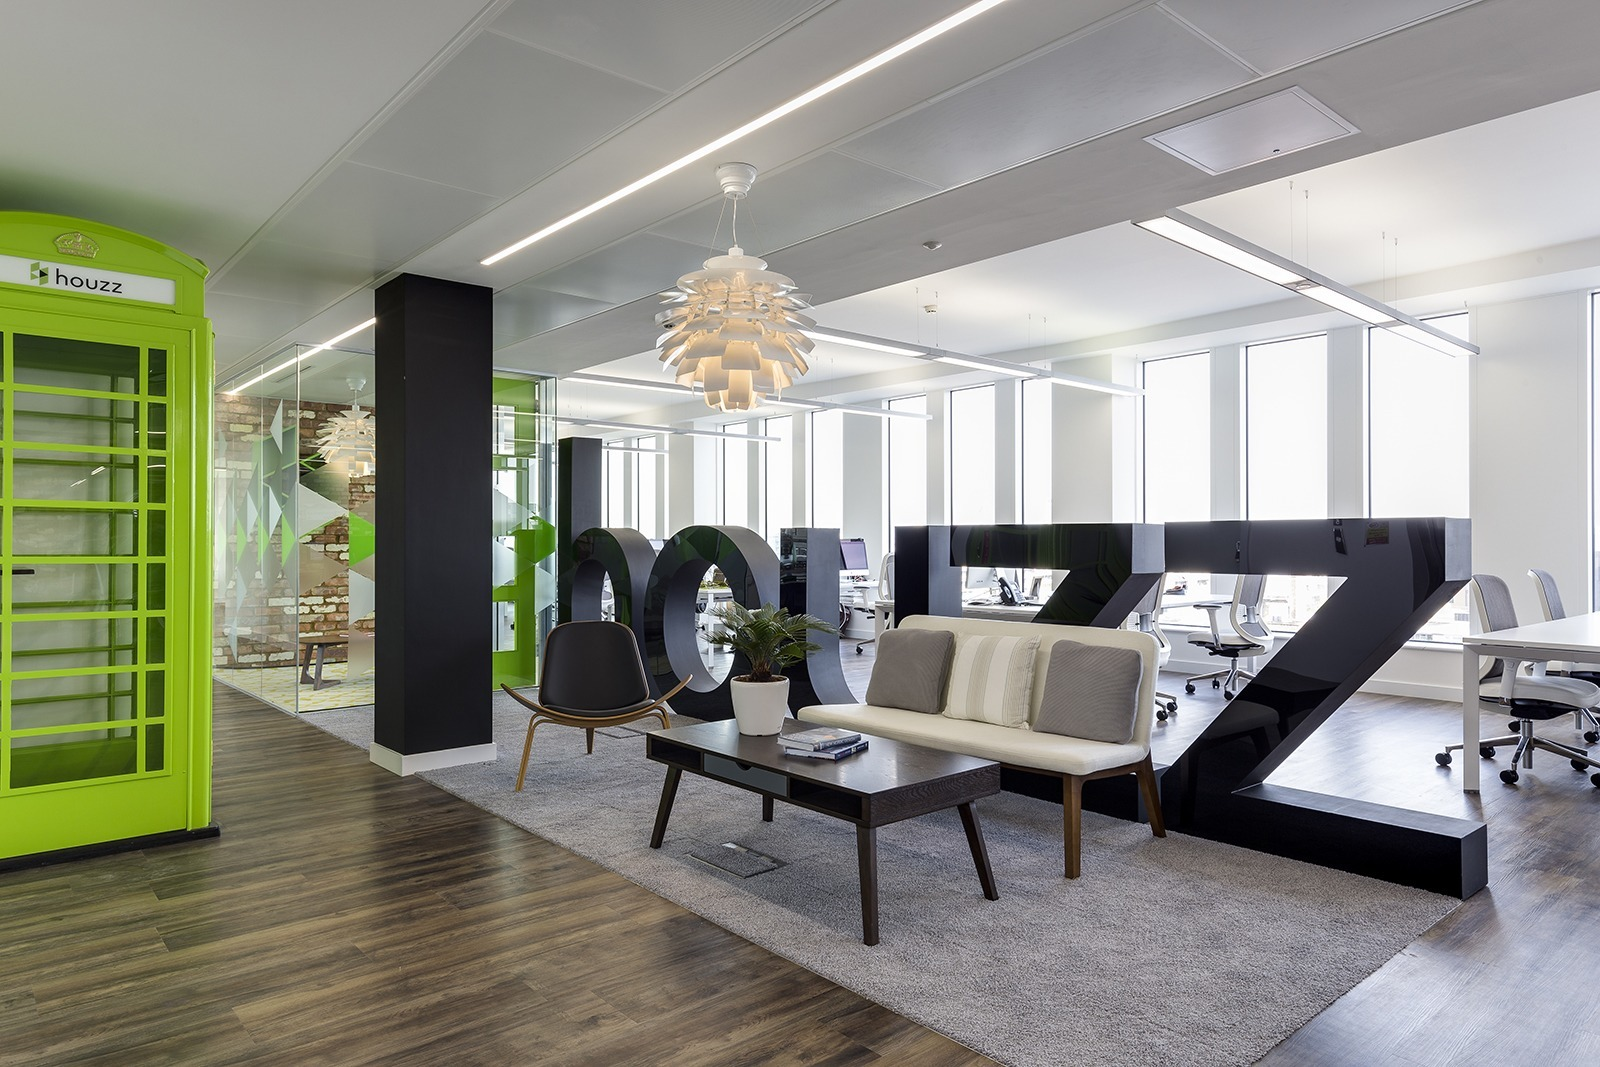 A tour of houzz s new european headquarters officelovin 39 - Us department of the interior jobs ...